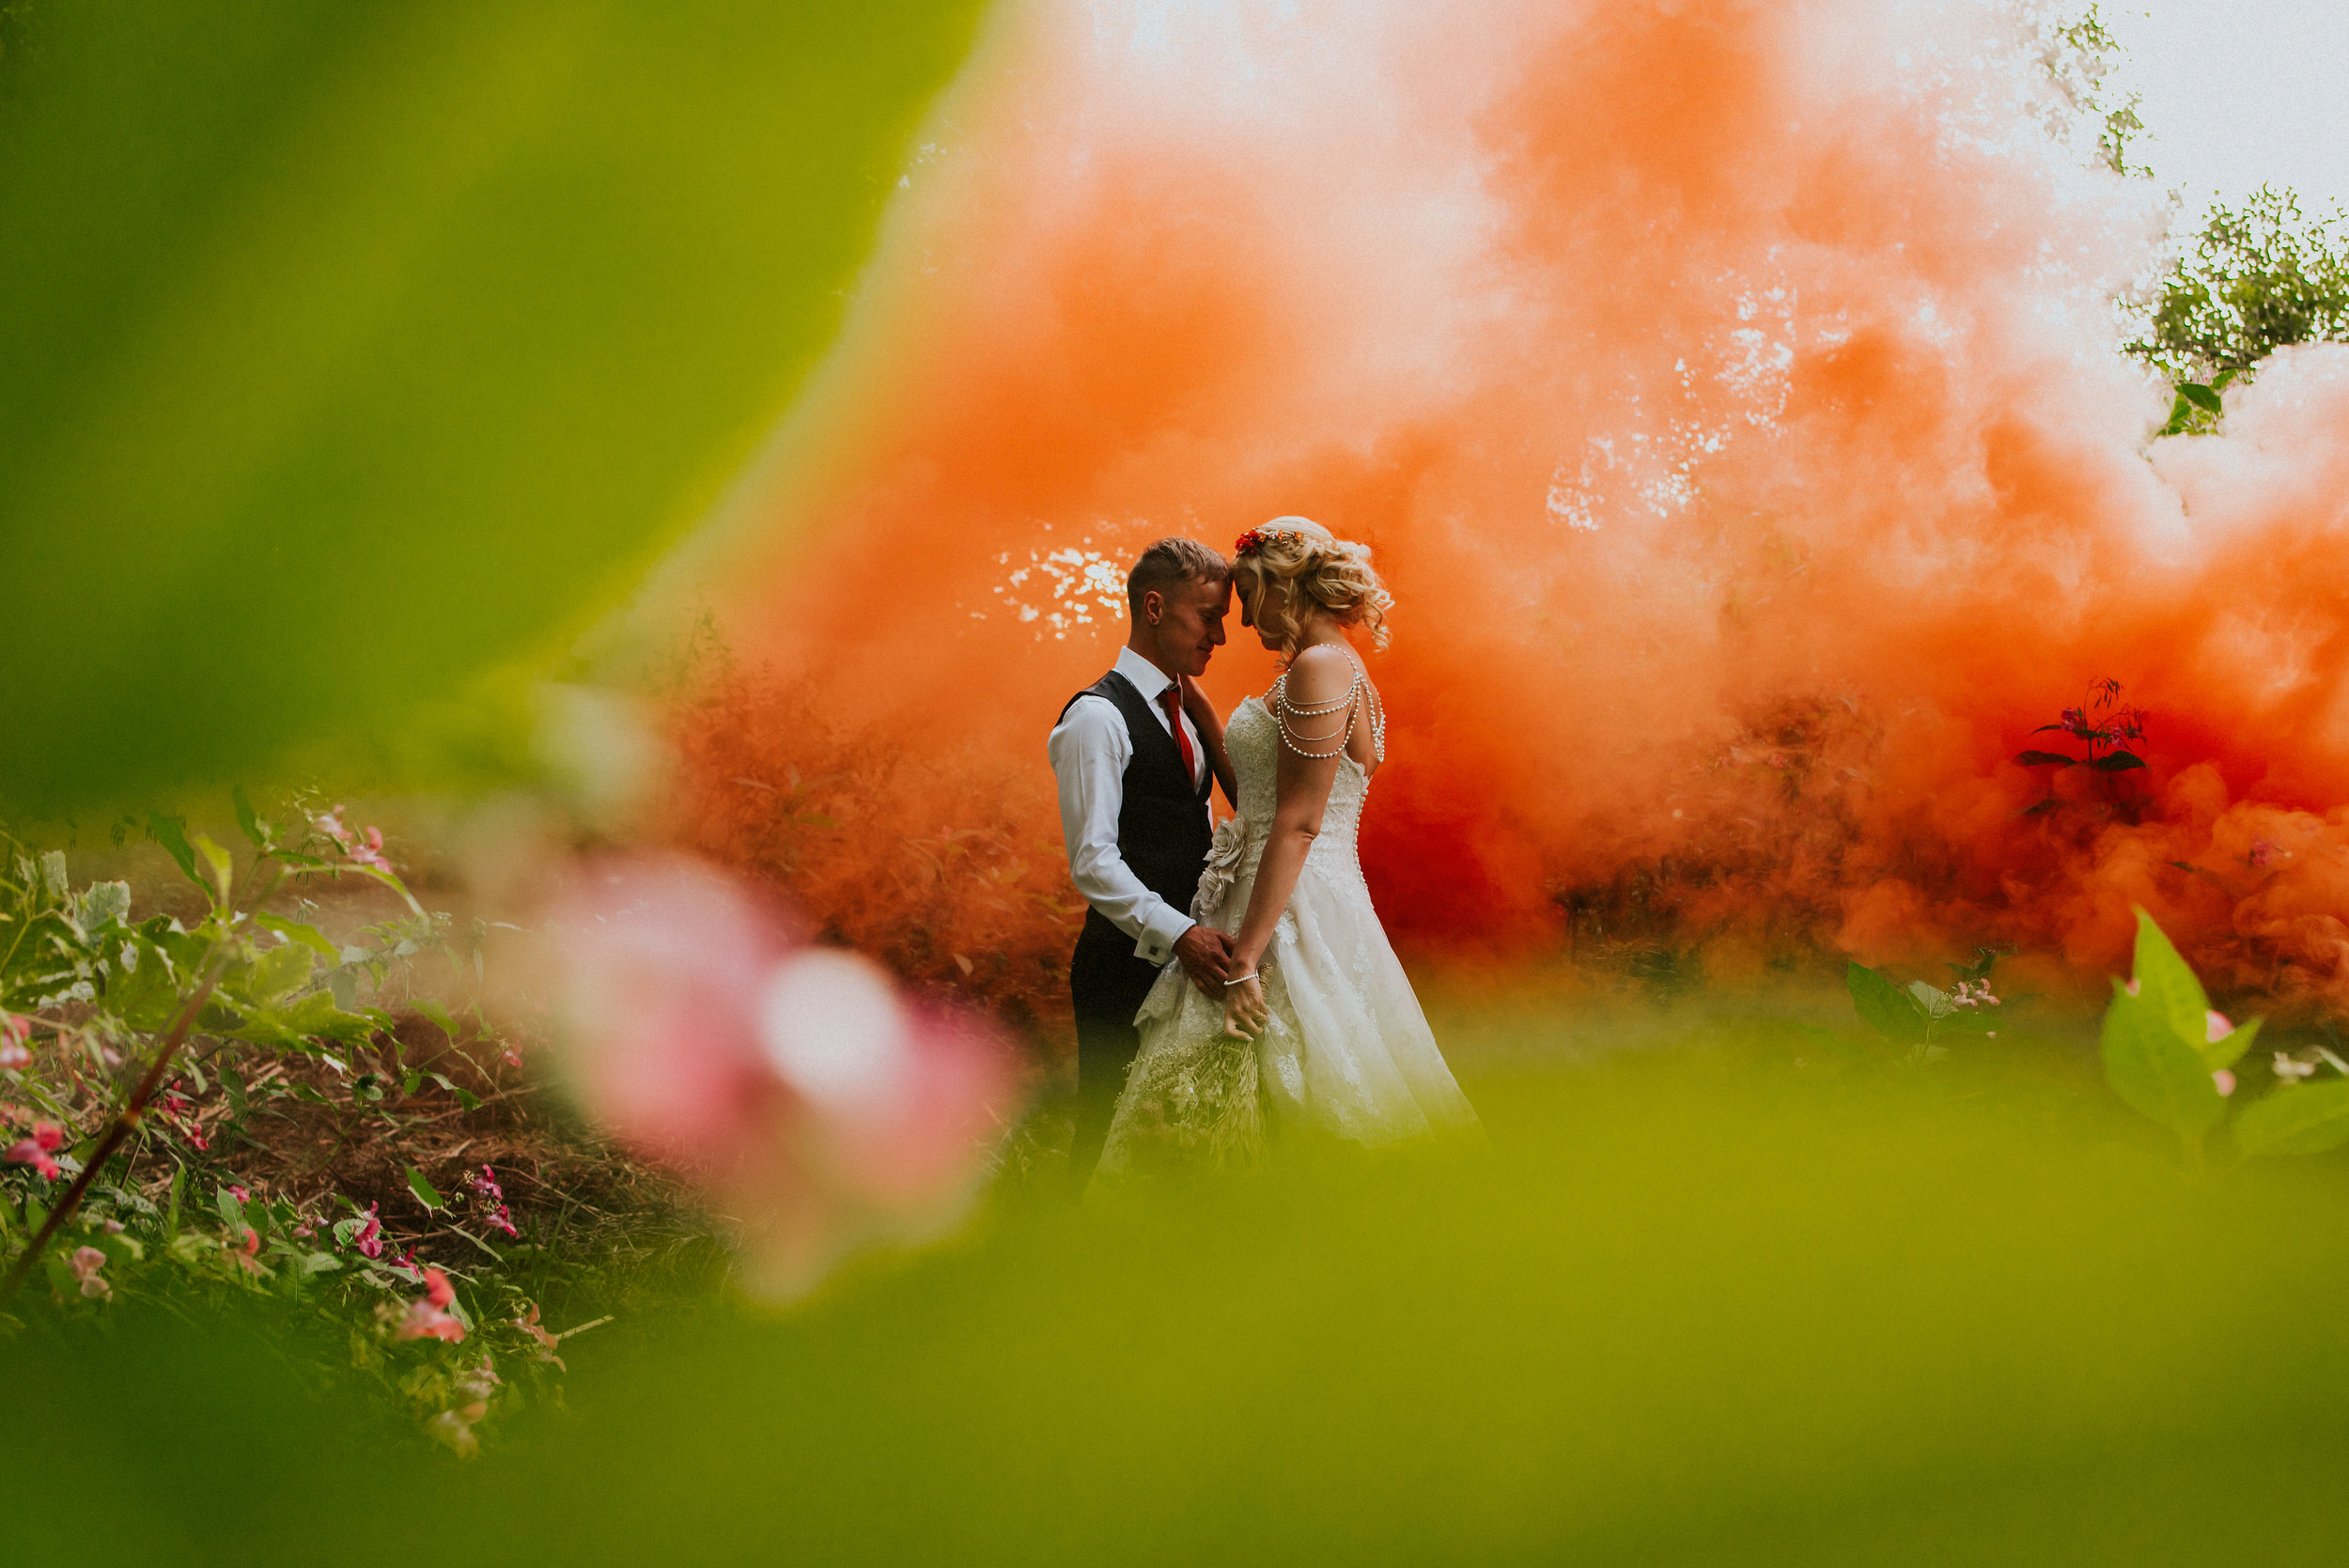 A festival themed teepee wedding meets an industrial setting of Thwaite Mills in Leeds. Smoke bombs, eclectic portraits & a killer party combine amidst true love in the fading light of Summer.